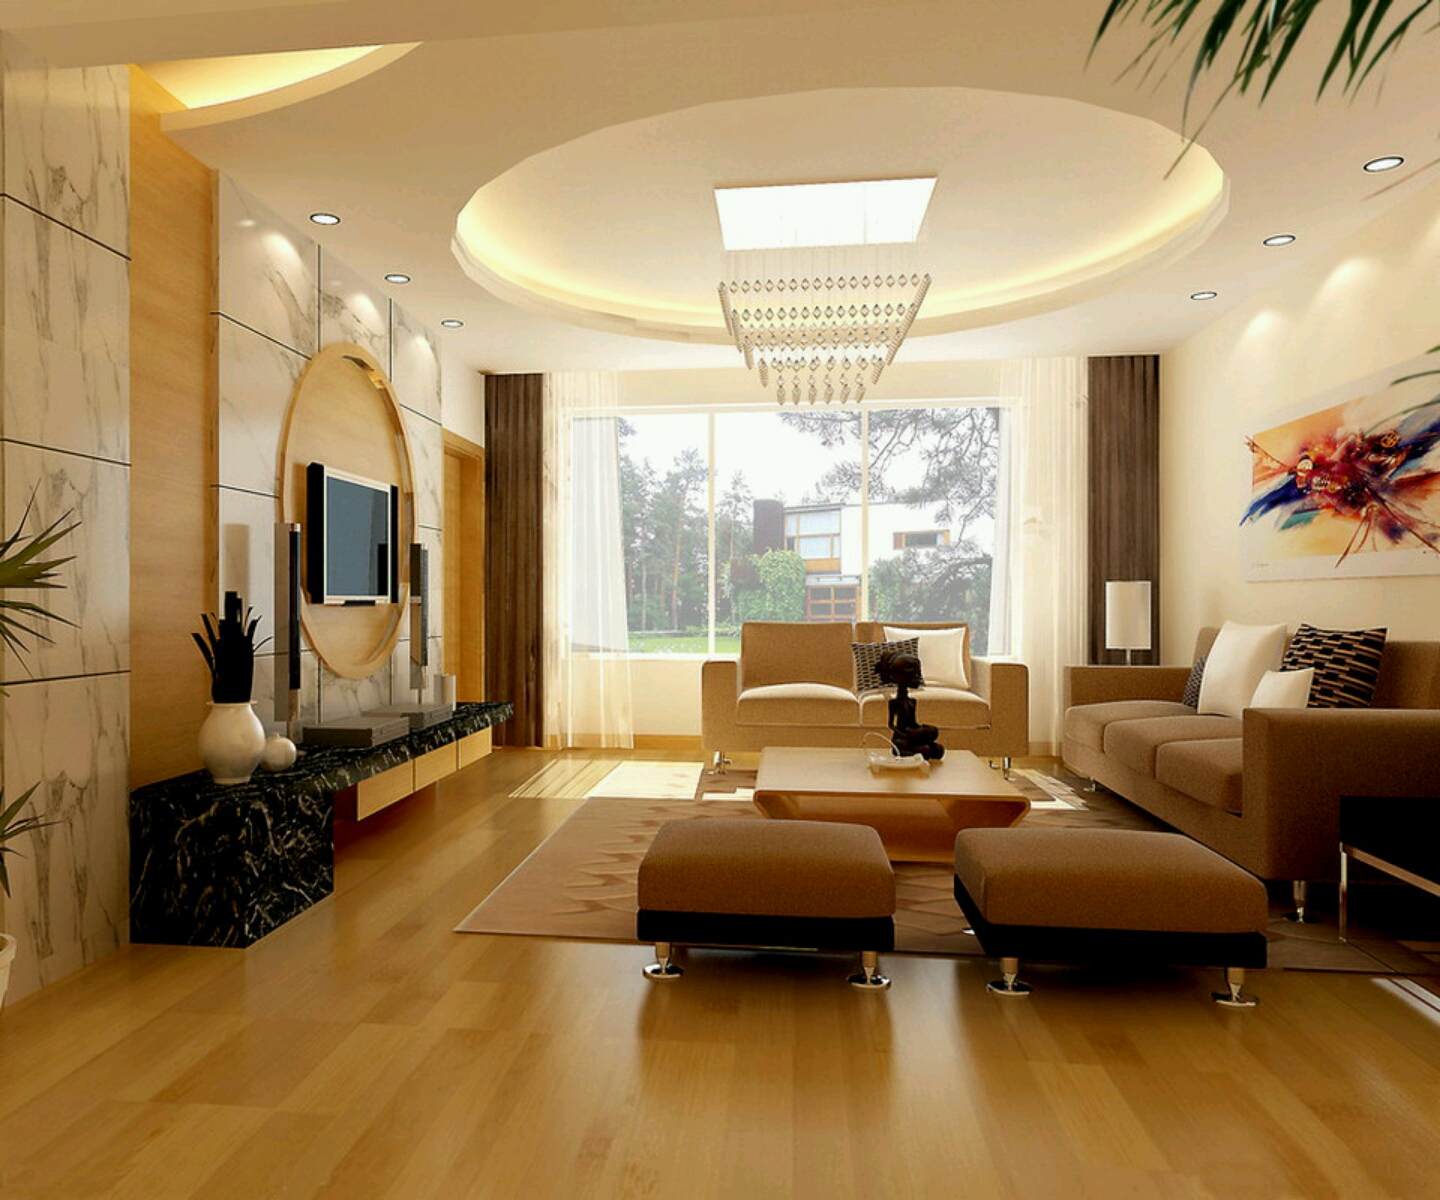 Modern interior decoration living rooms ceiling designs for Designers living room ideas